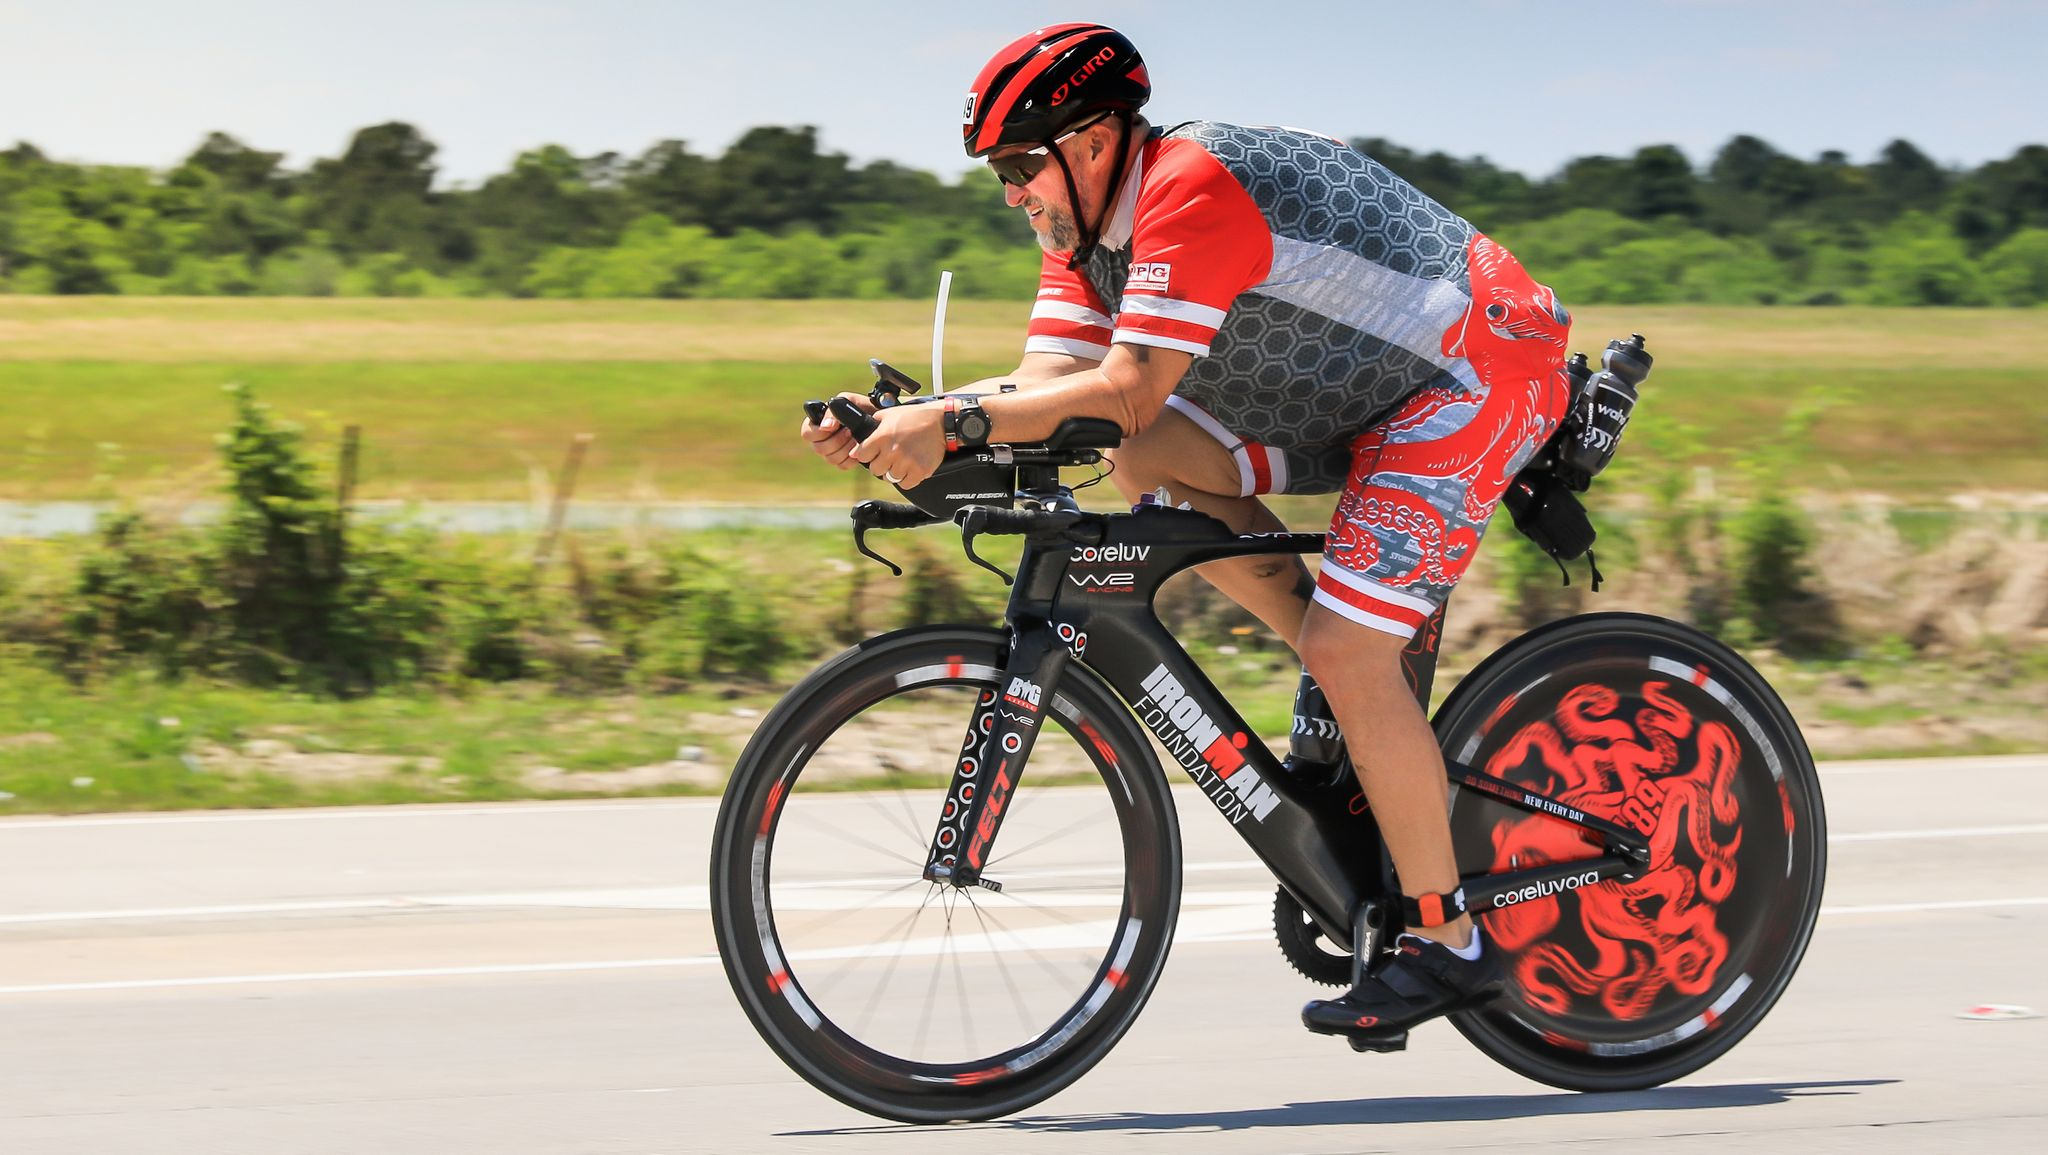 This Man Was Nearly 500 Pounds. Now He's Competing in an Ironman Triathlon